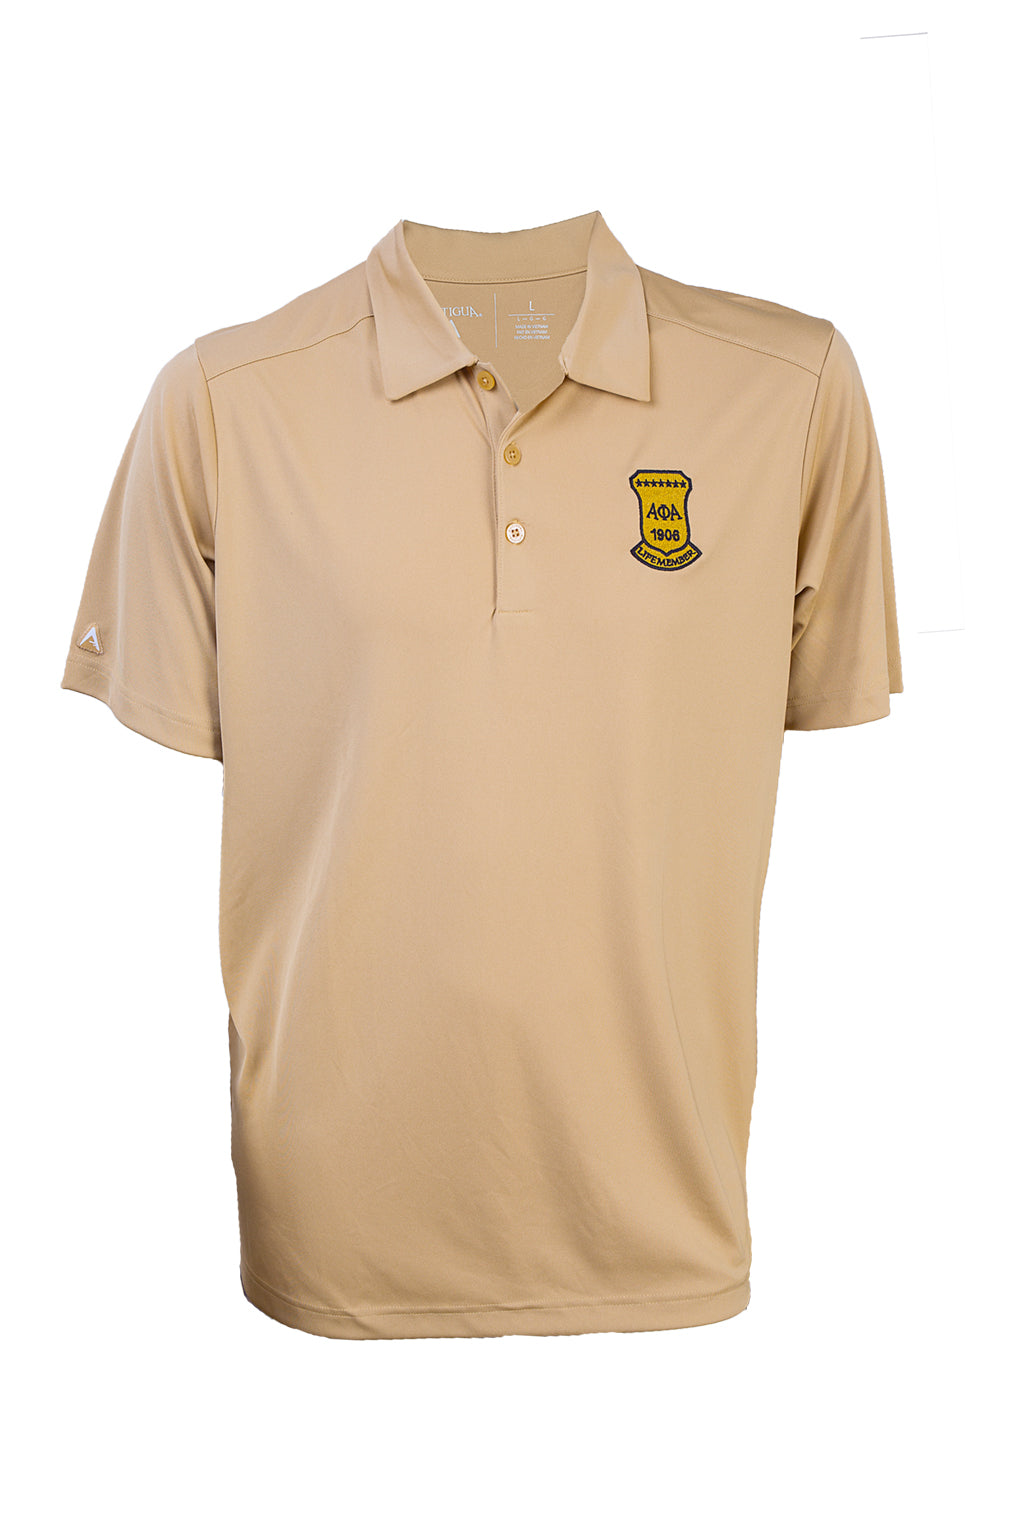 Alpha Life Member Old Gold Polo Shirt - High Quality Antigua Brand Dri-Fit shirt